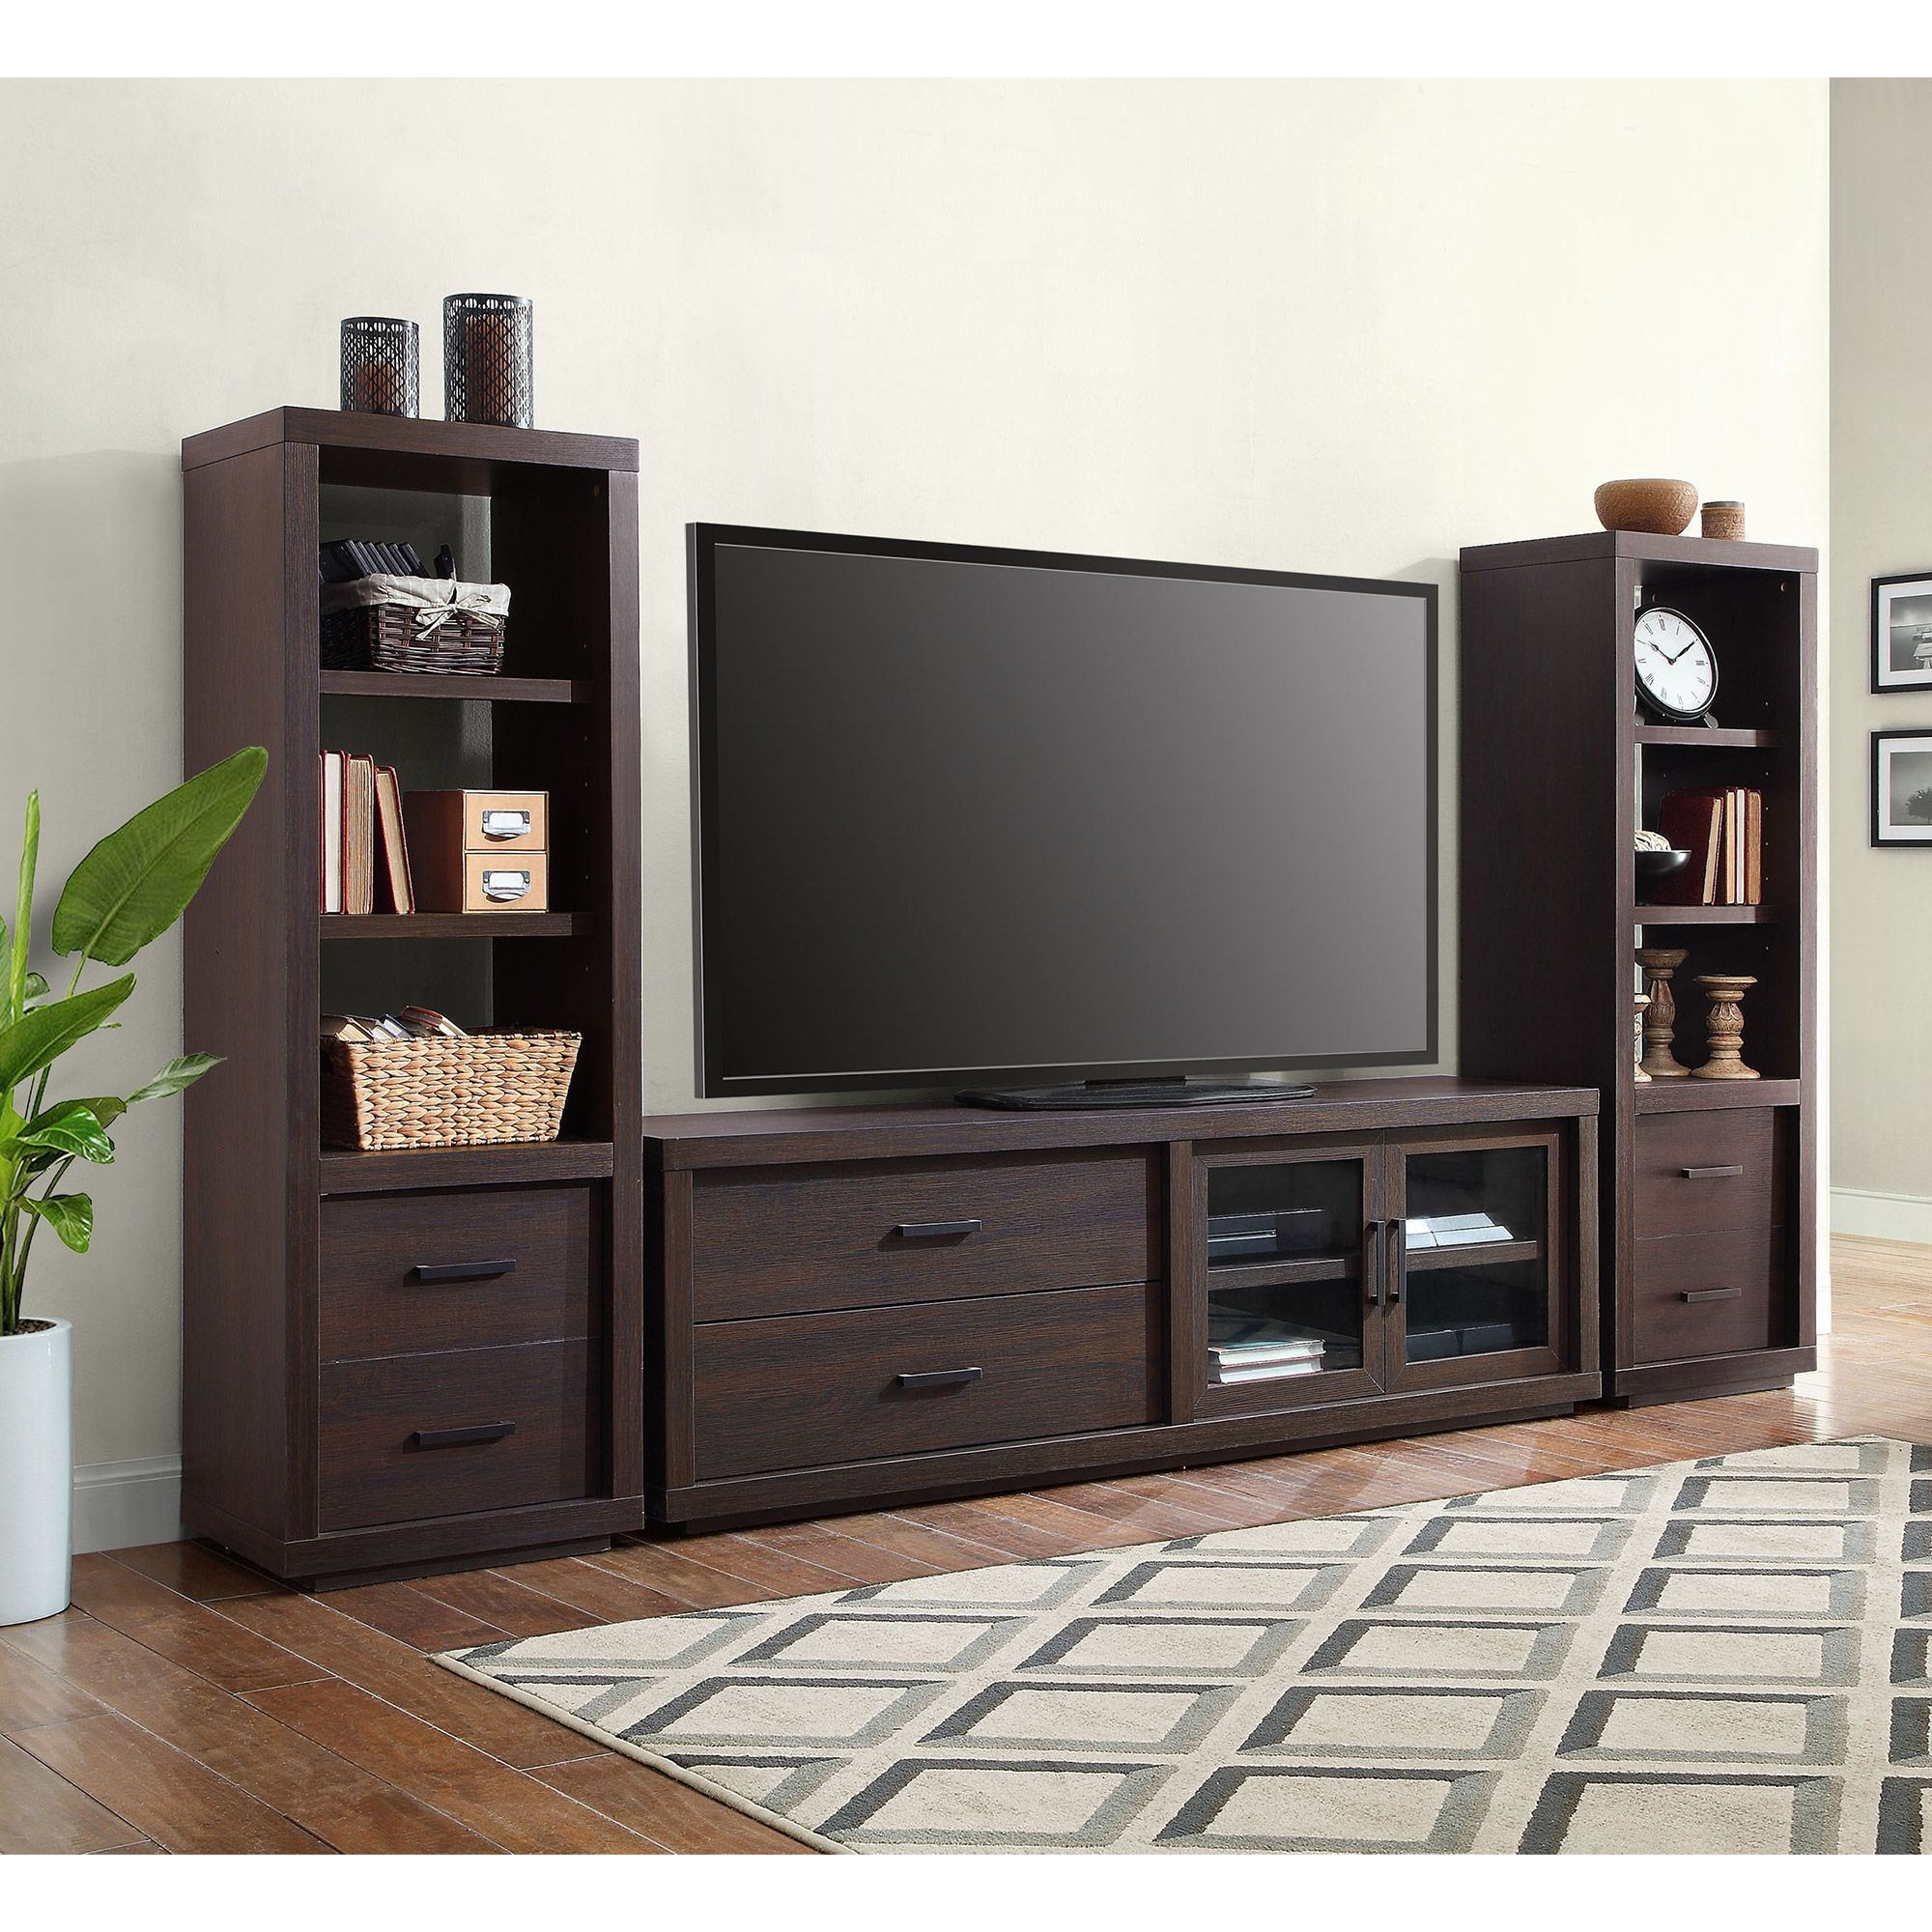 267cffe44ac07e4a51a188cad36b99e4 - Better Homes And Gardens Tv Stand At Walmart